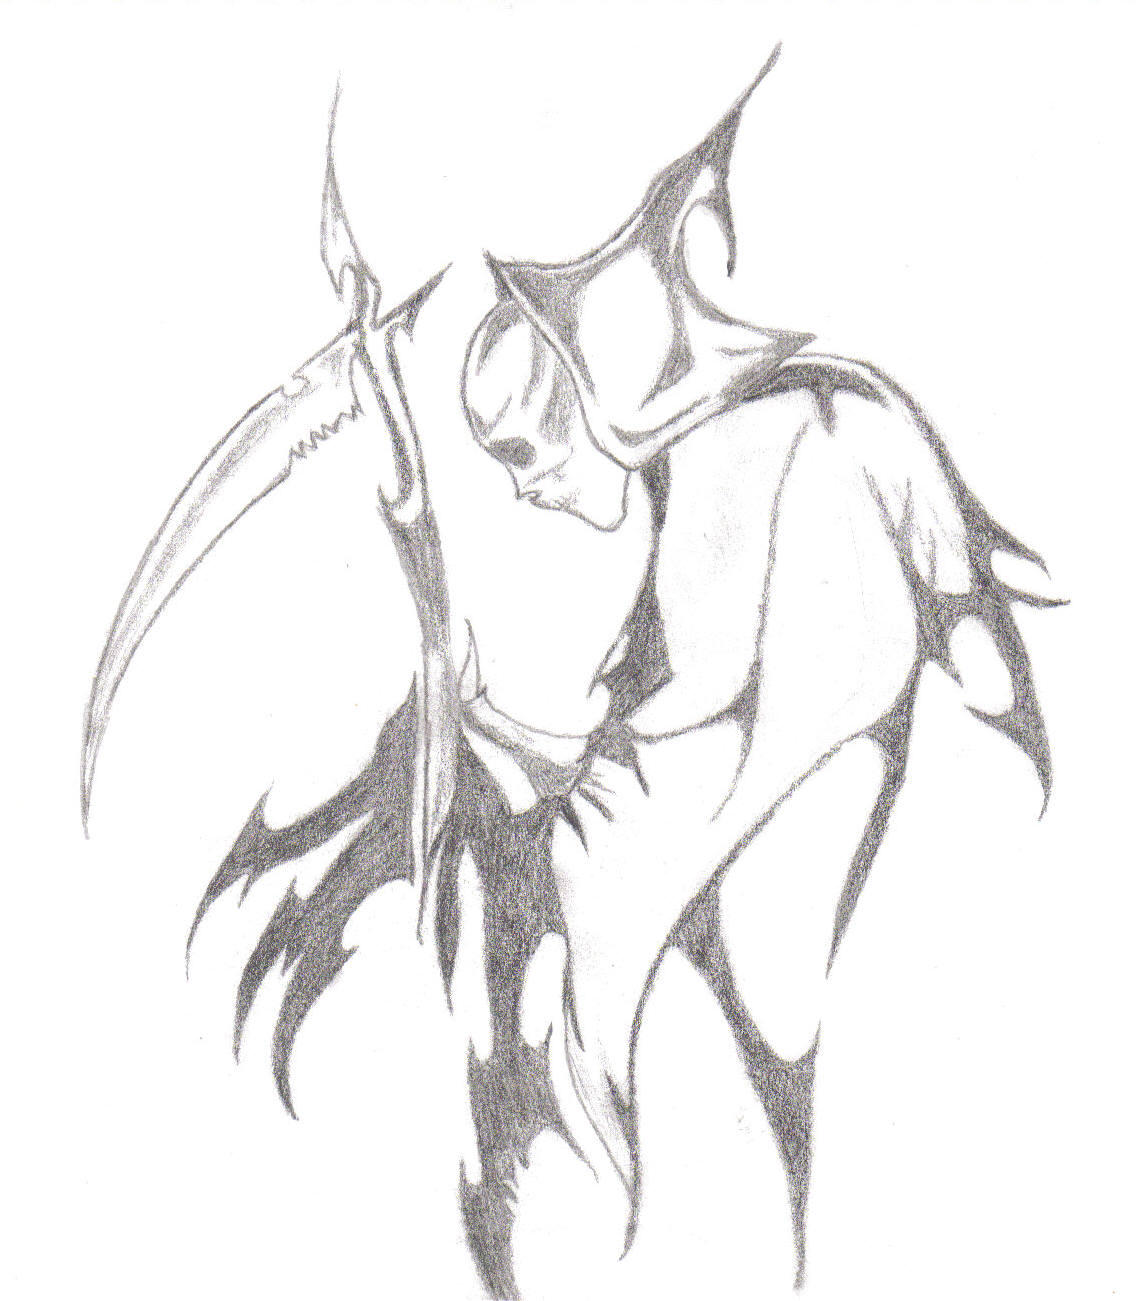 Emo Drawings together with Monkey King 439525140 furthermore Cute Mermaid Drawing furthermore Horse Demon 29804728 also Awesome Drawings Of The Grim Reaper. on scary anime drawings in pencil